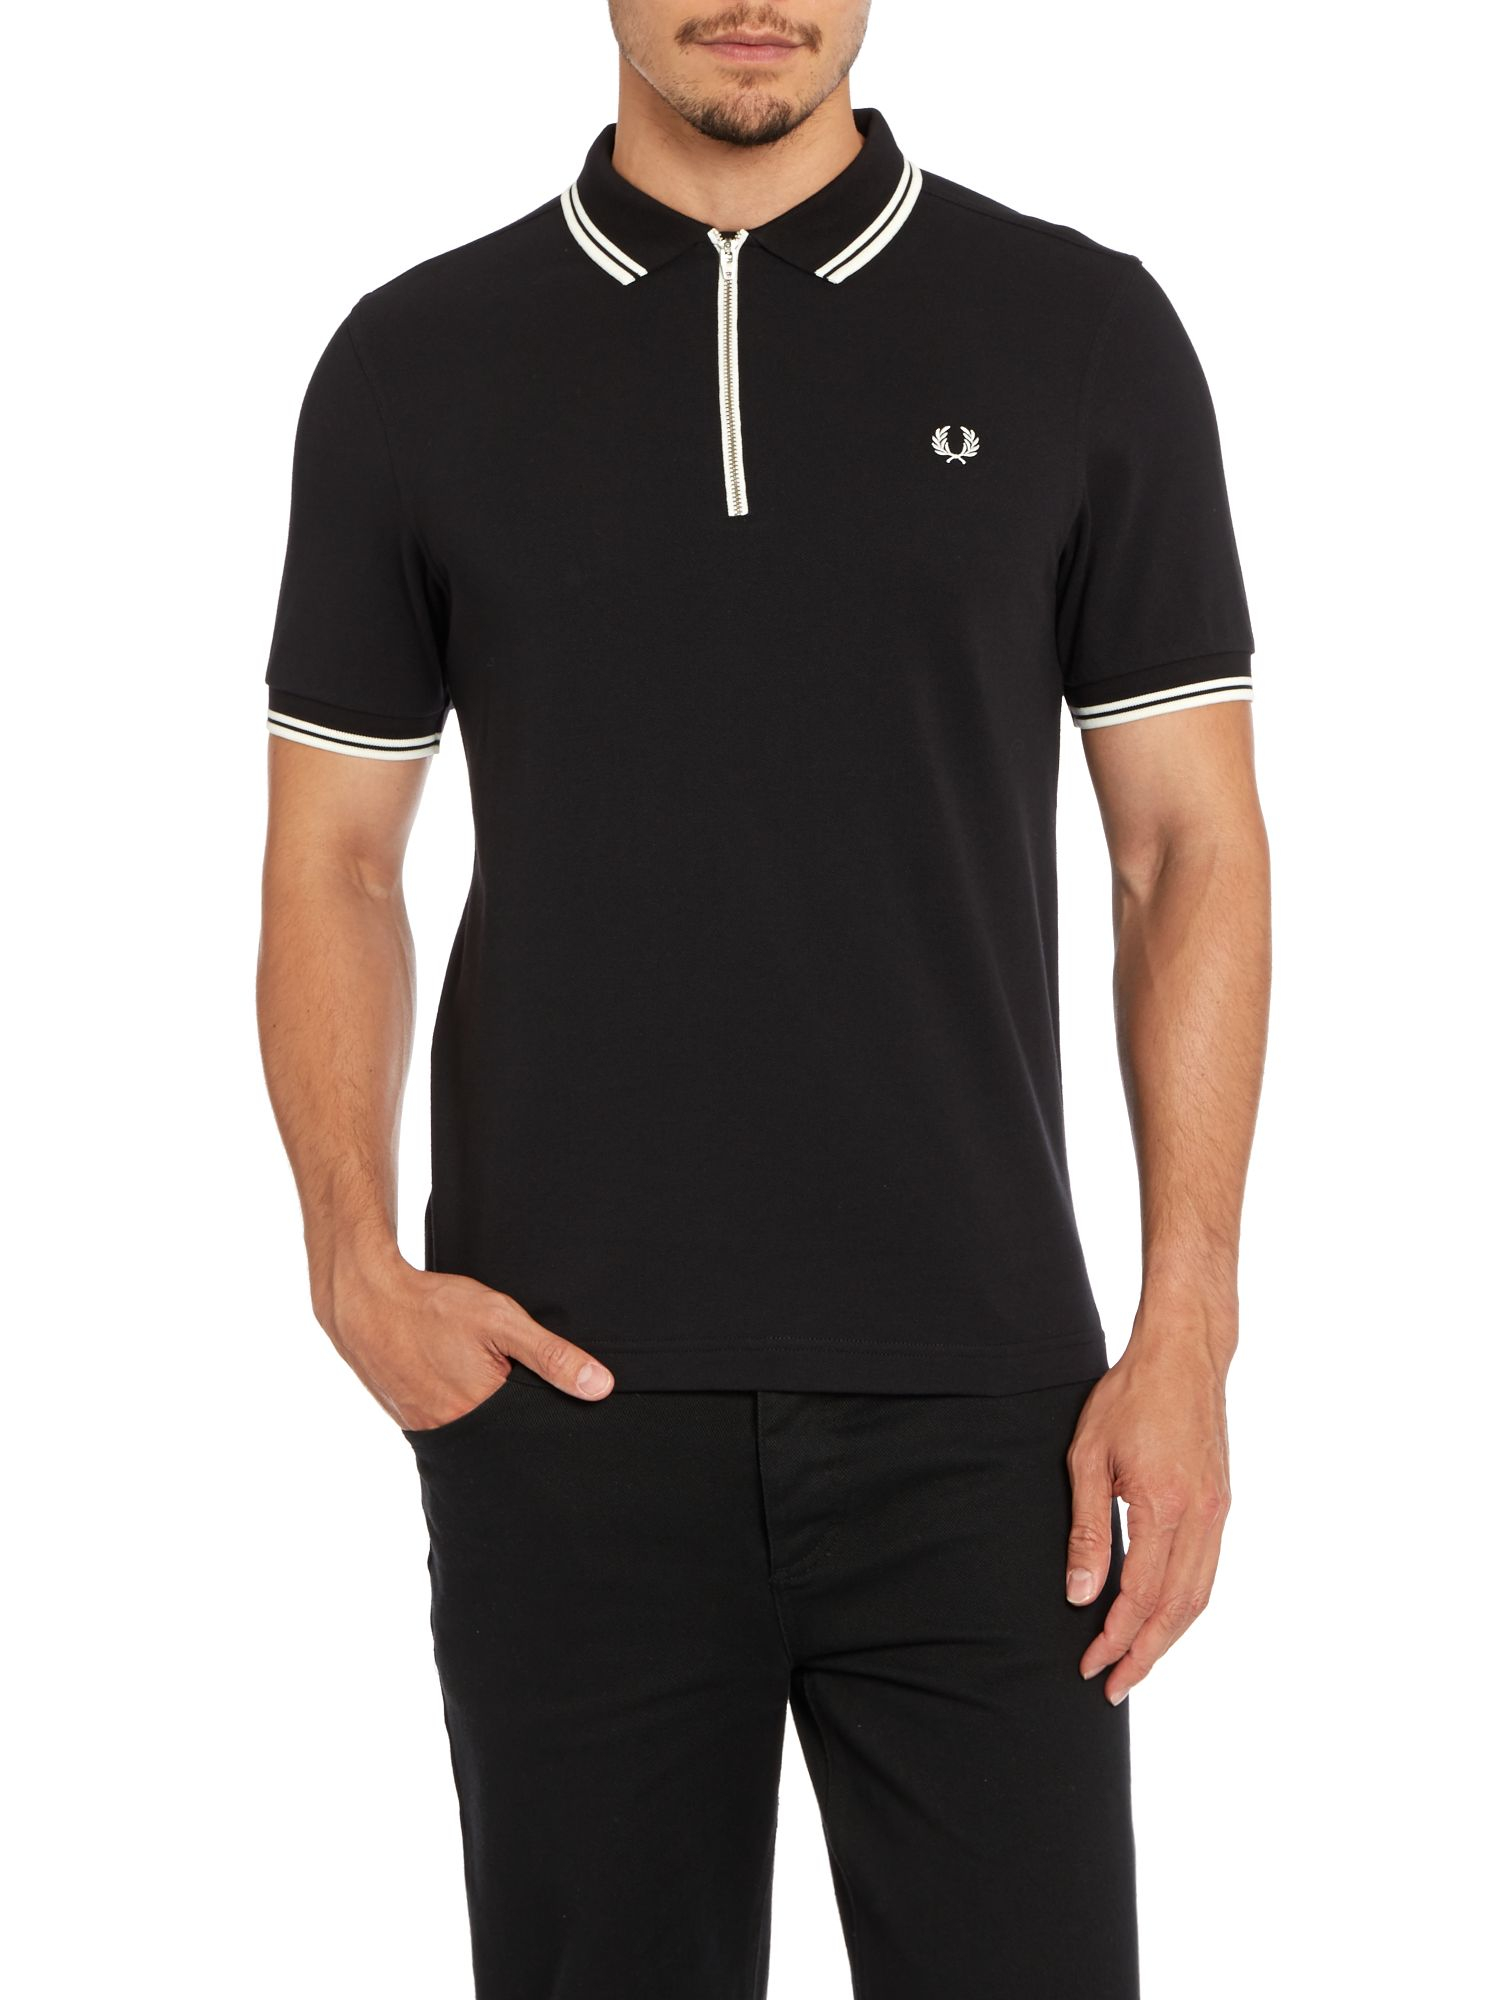 fred perry zip placket pique polo shirt in black for men. Black Bedroom Furniture Sets. Home Design Ideas